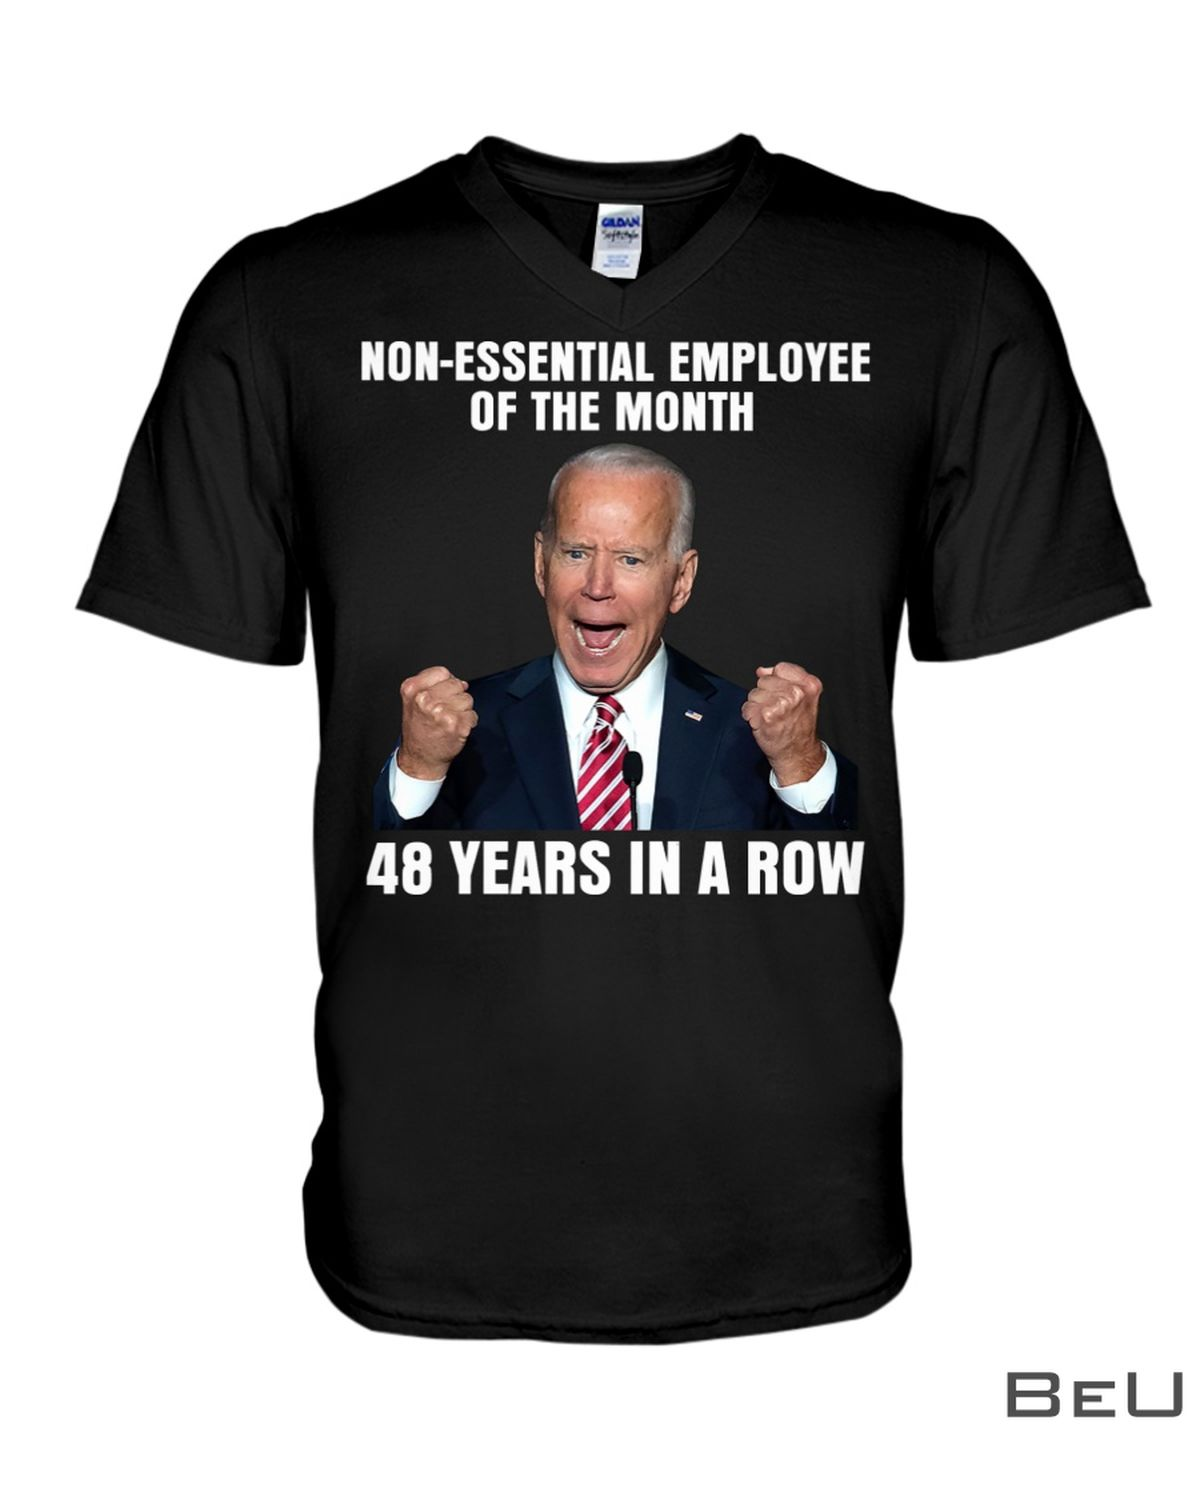 Non-Essential Employee Of The Month 48 Years In A Row Shirt x